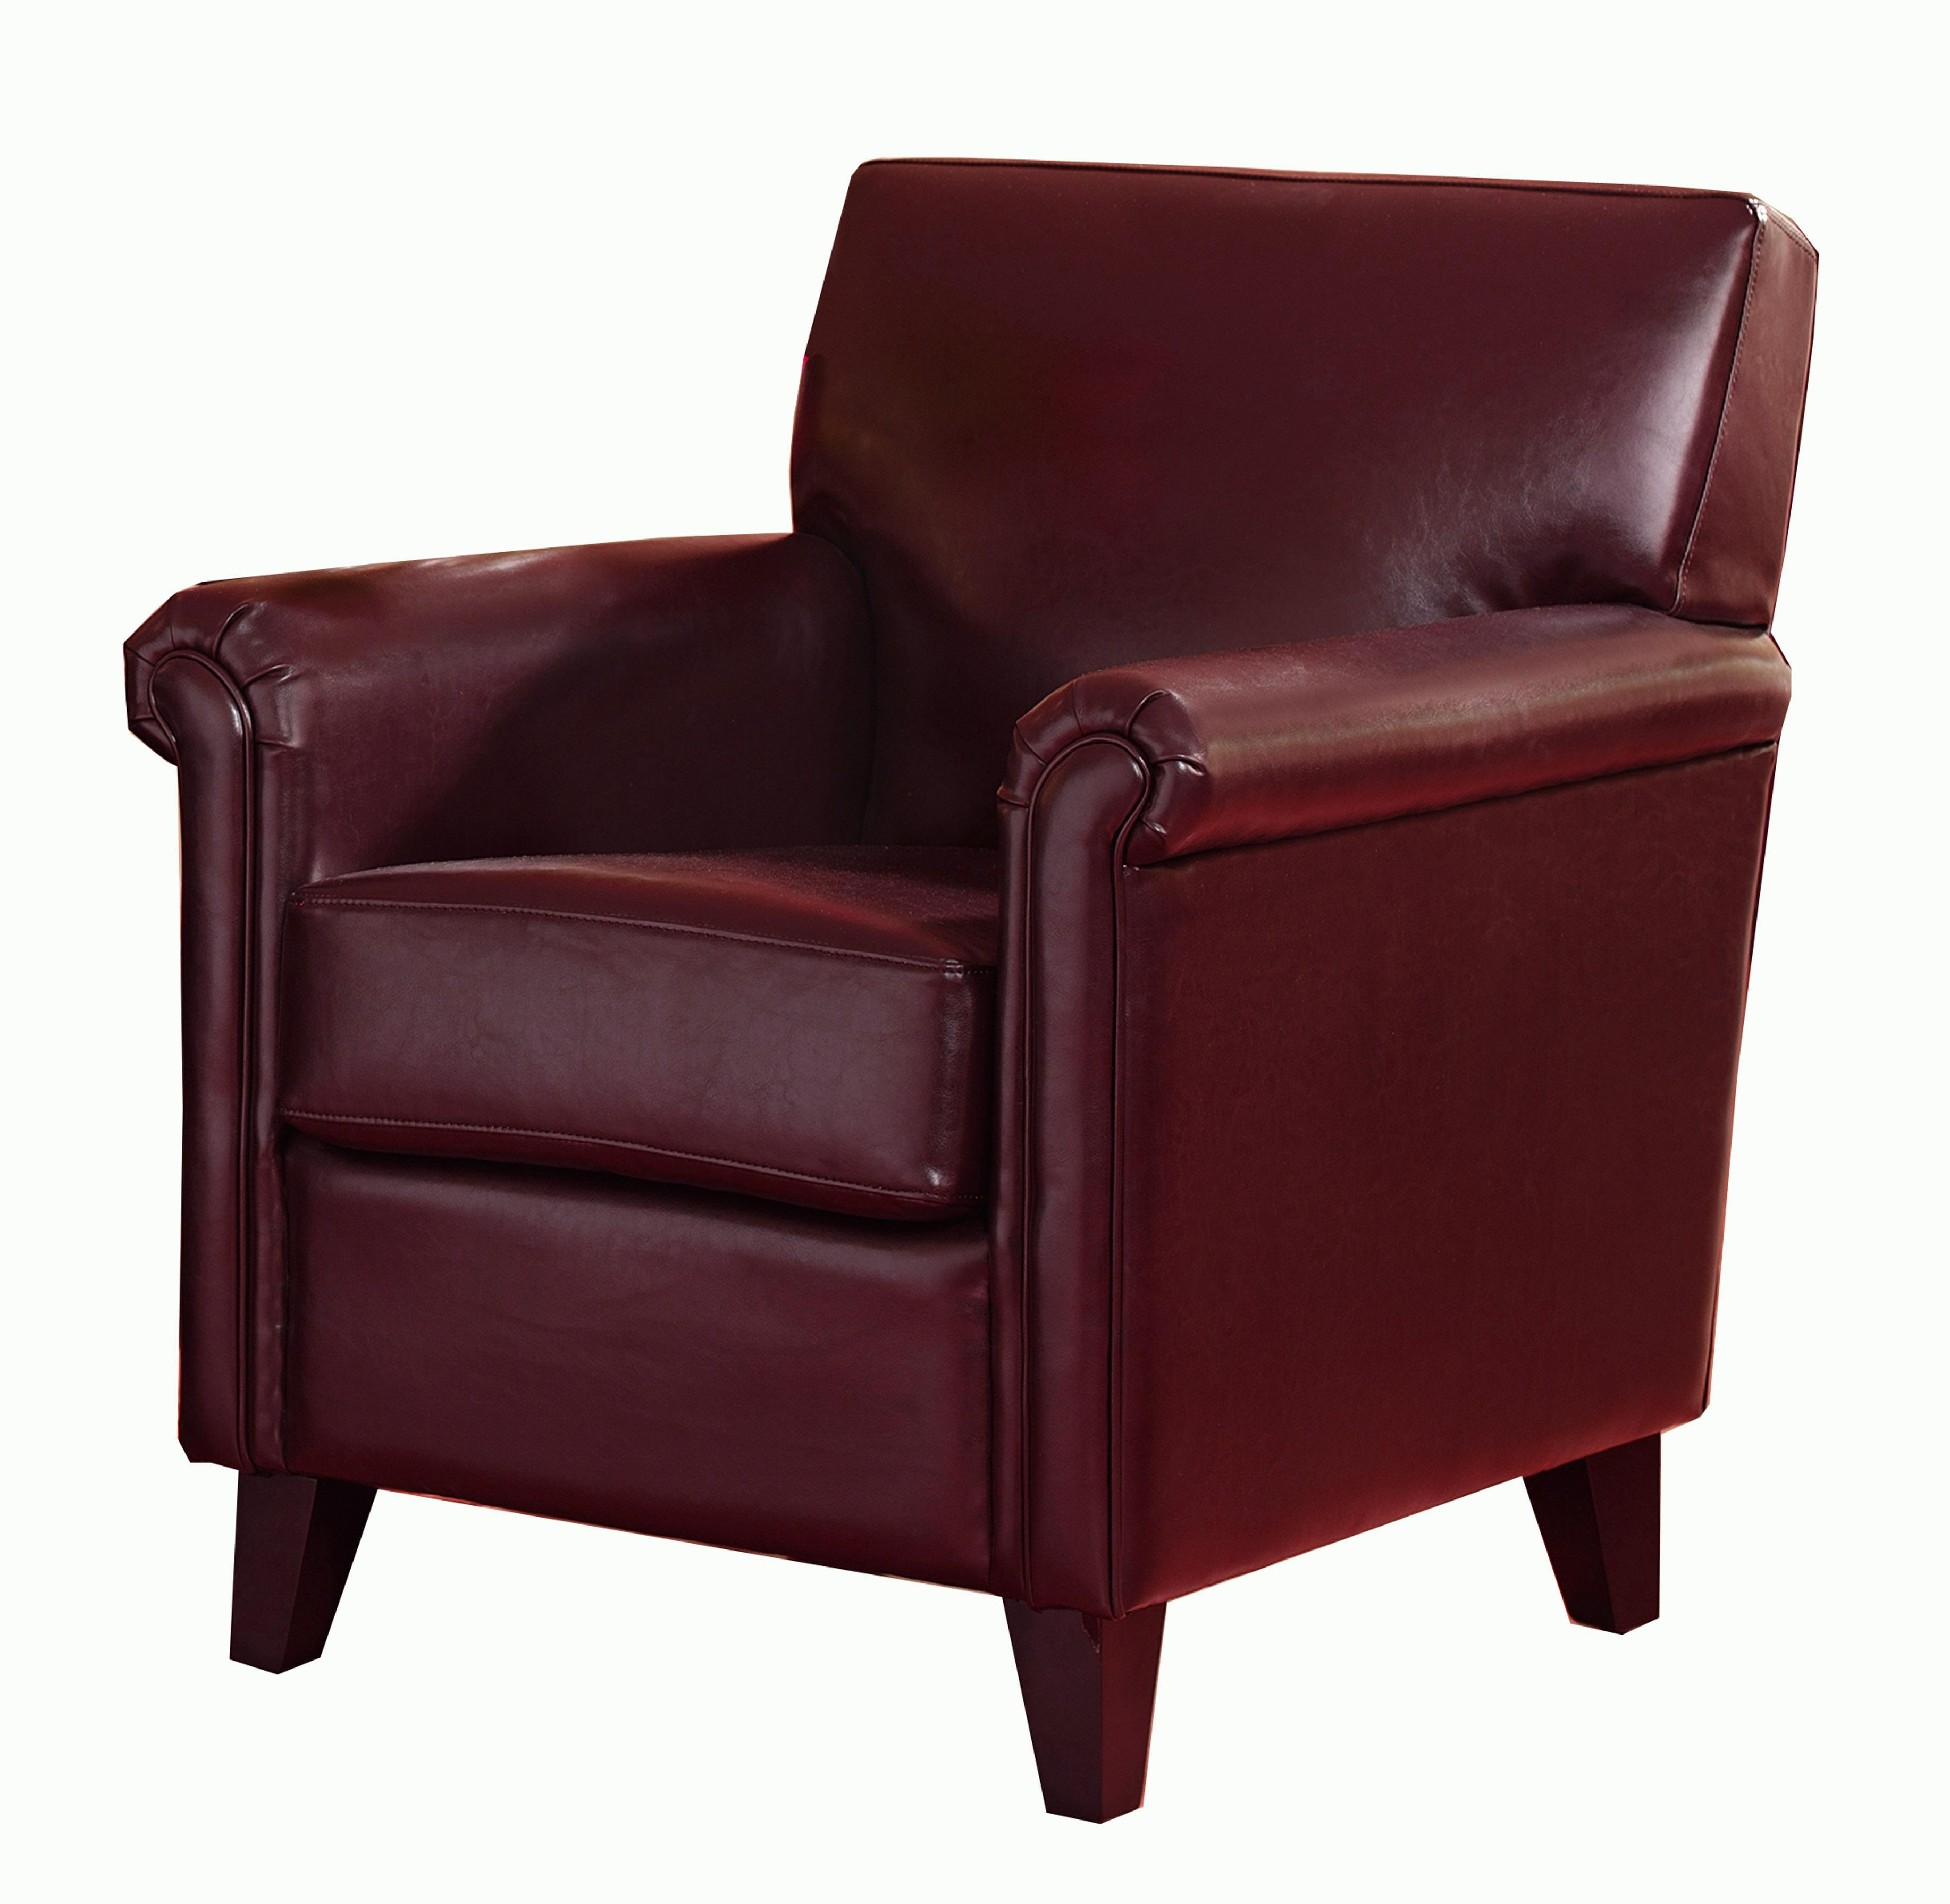 Leeds Red Bonded Leather Club Chair by Christopher Knight Home